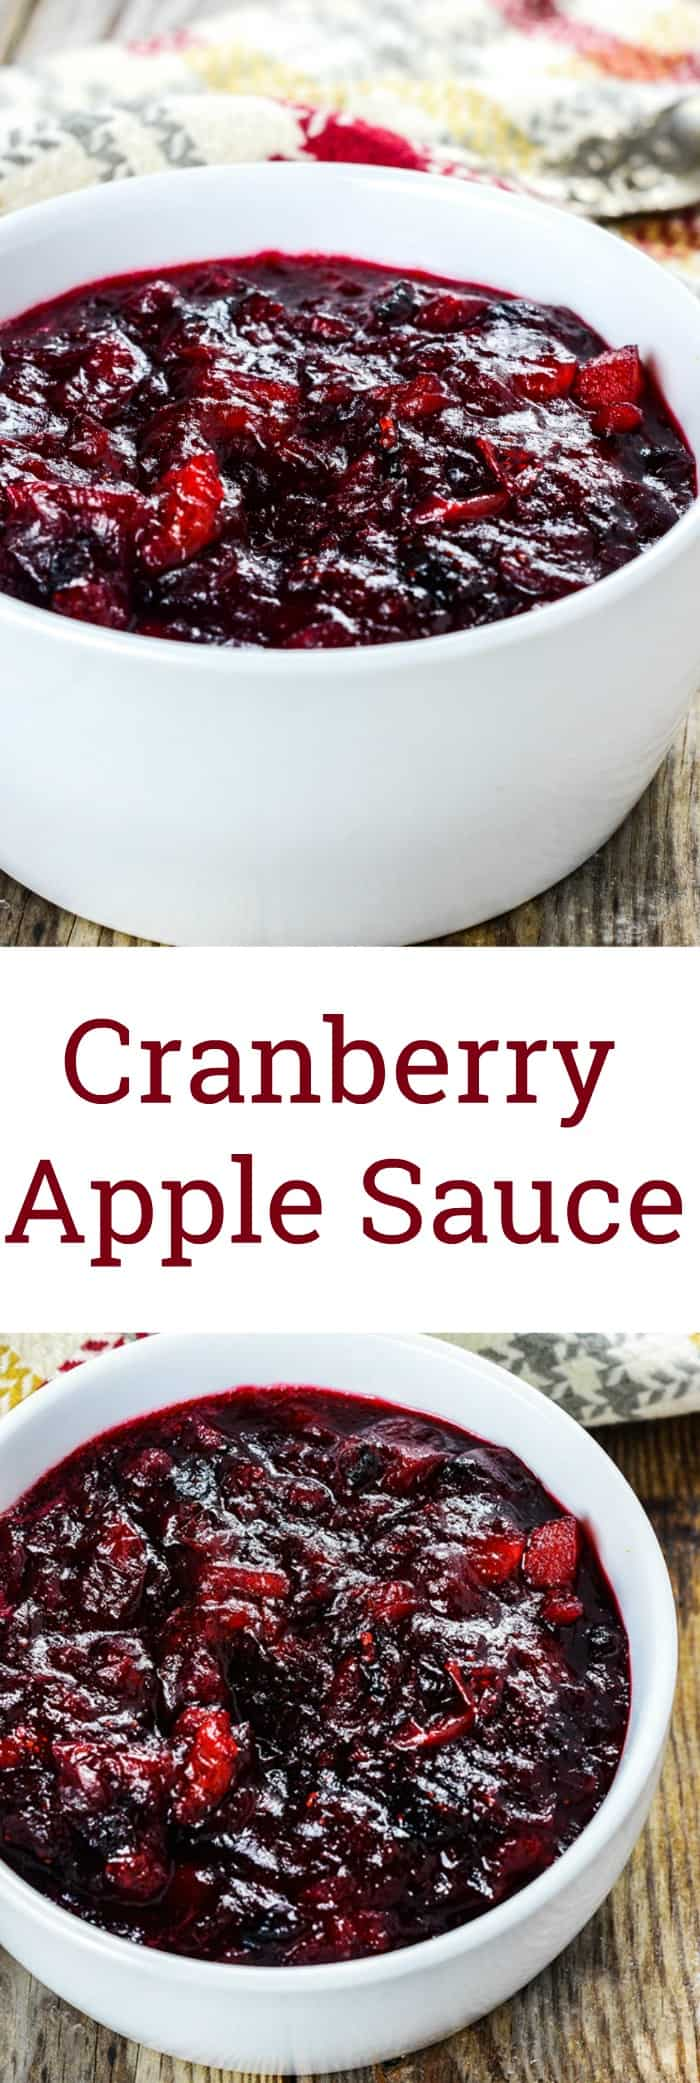 Healthy Cranberry Applesauce